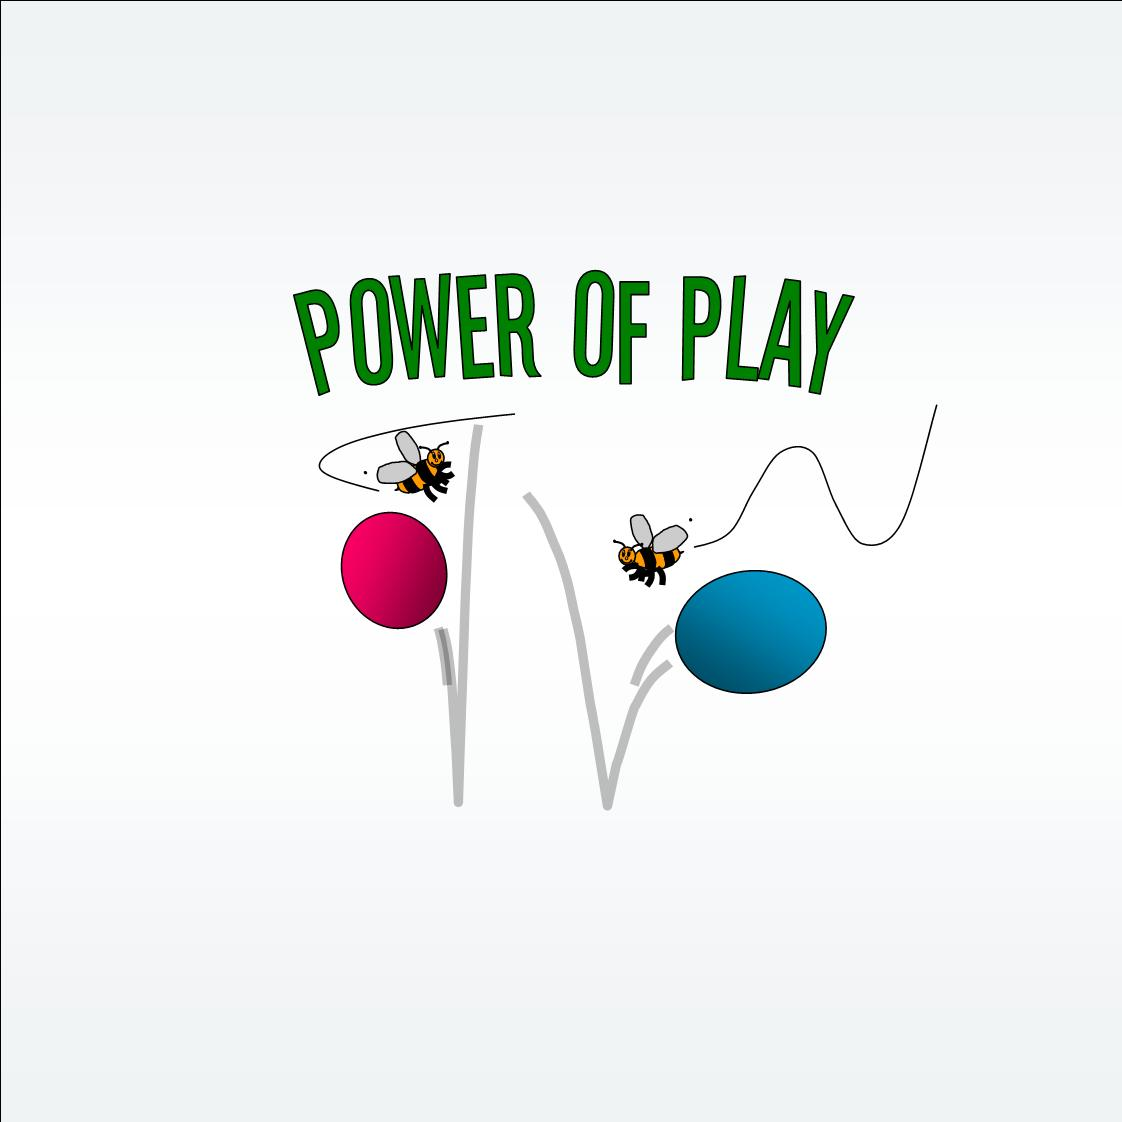 Logo Design by nk - Entry No. 45 in the Logo Design Contest Power Of Play Logo Design.